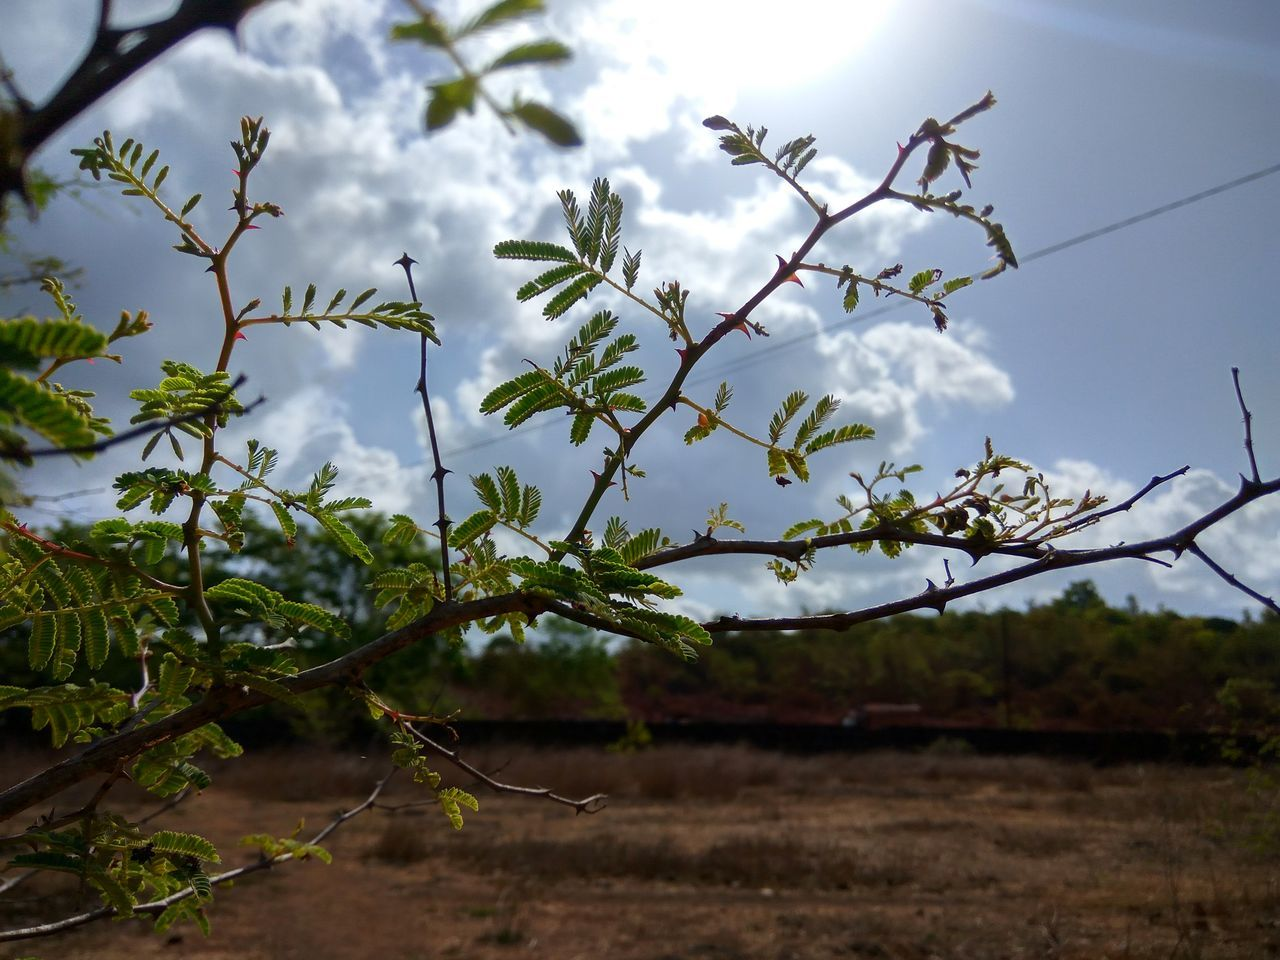 growth, nature, plant, no people, day, tree, beauty in nature, outdoors, branch, sky, freshness, fragility, close-up